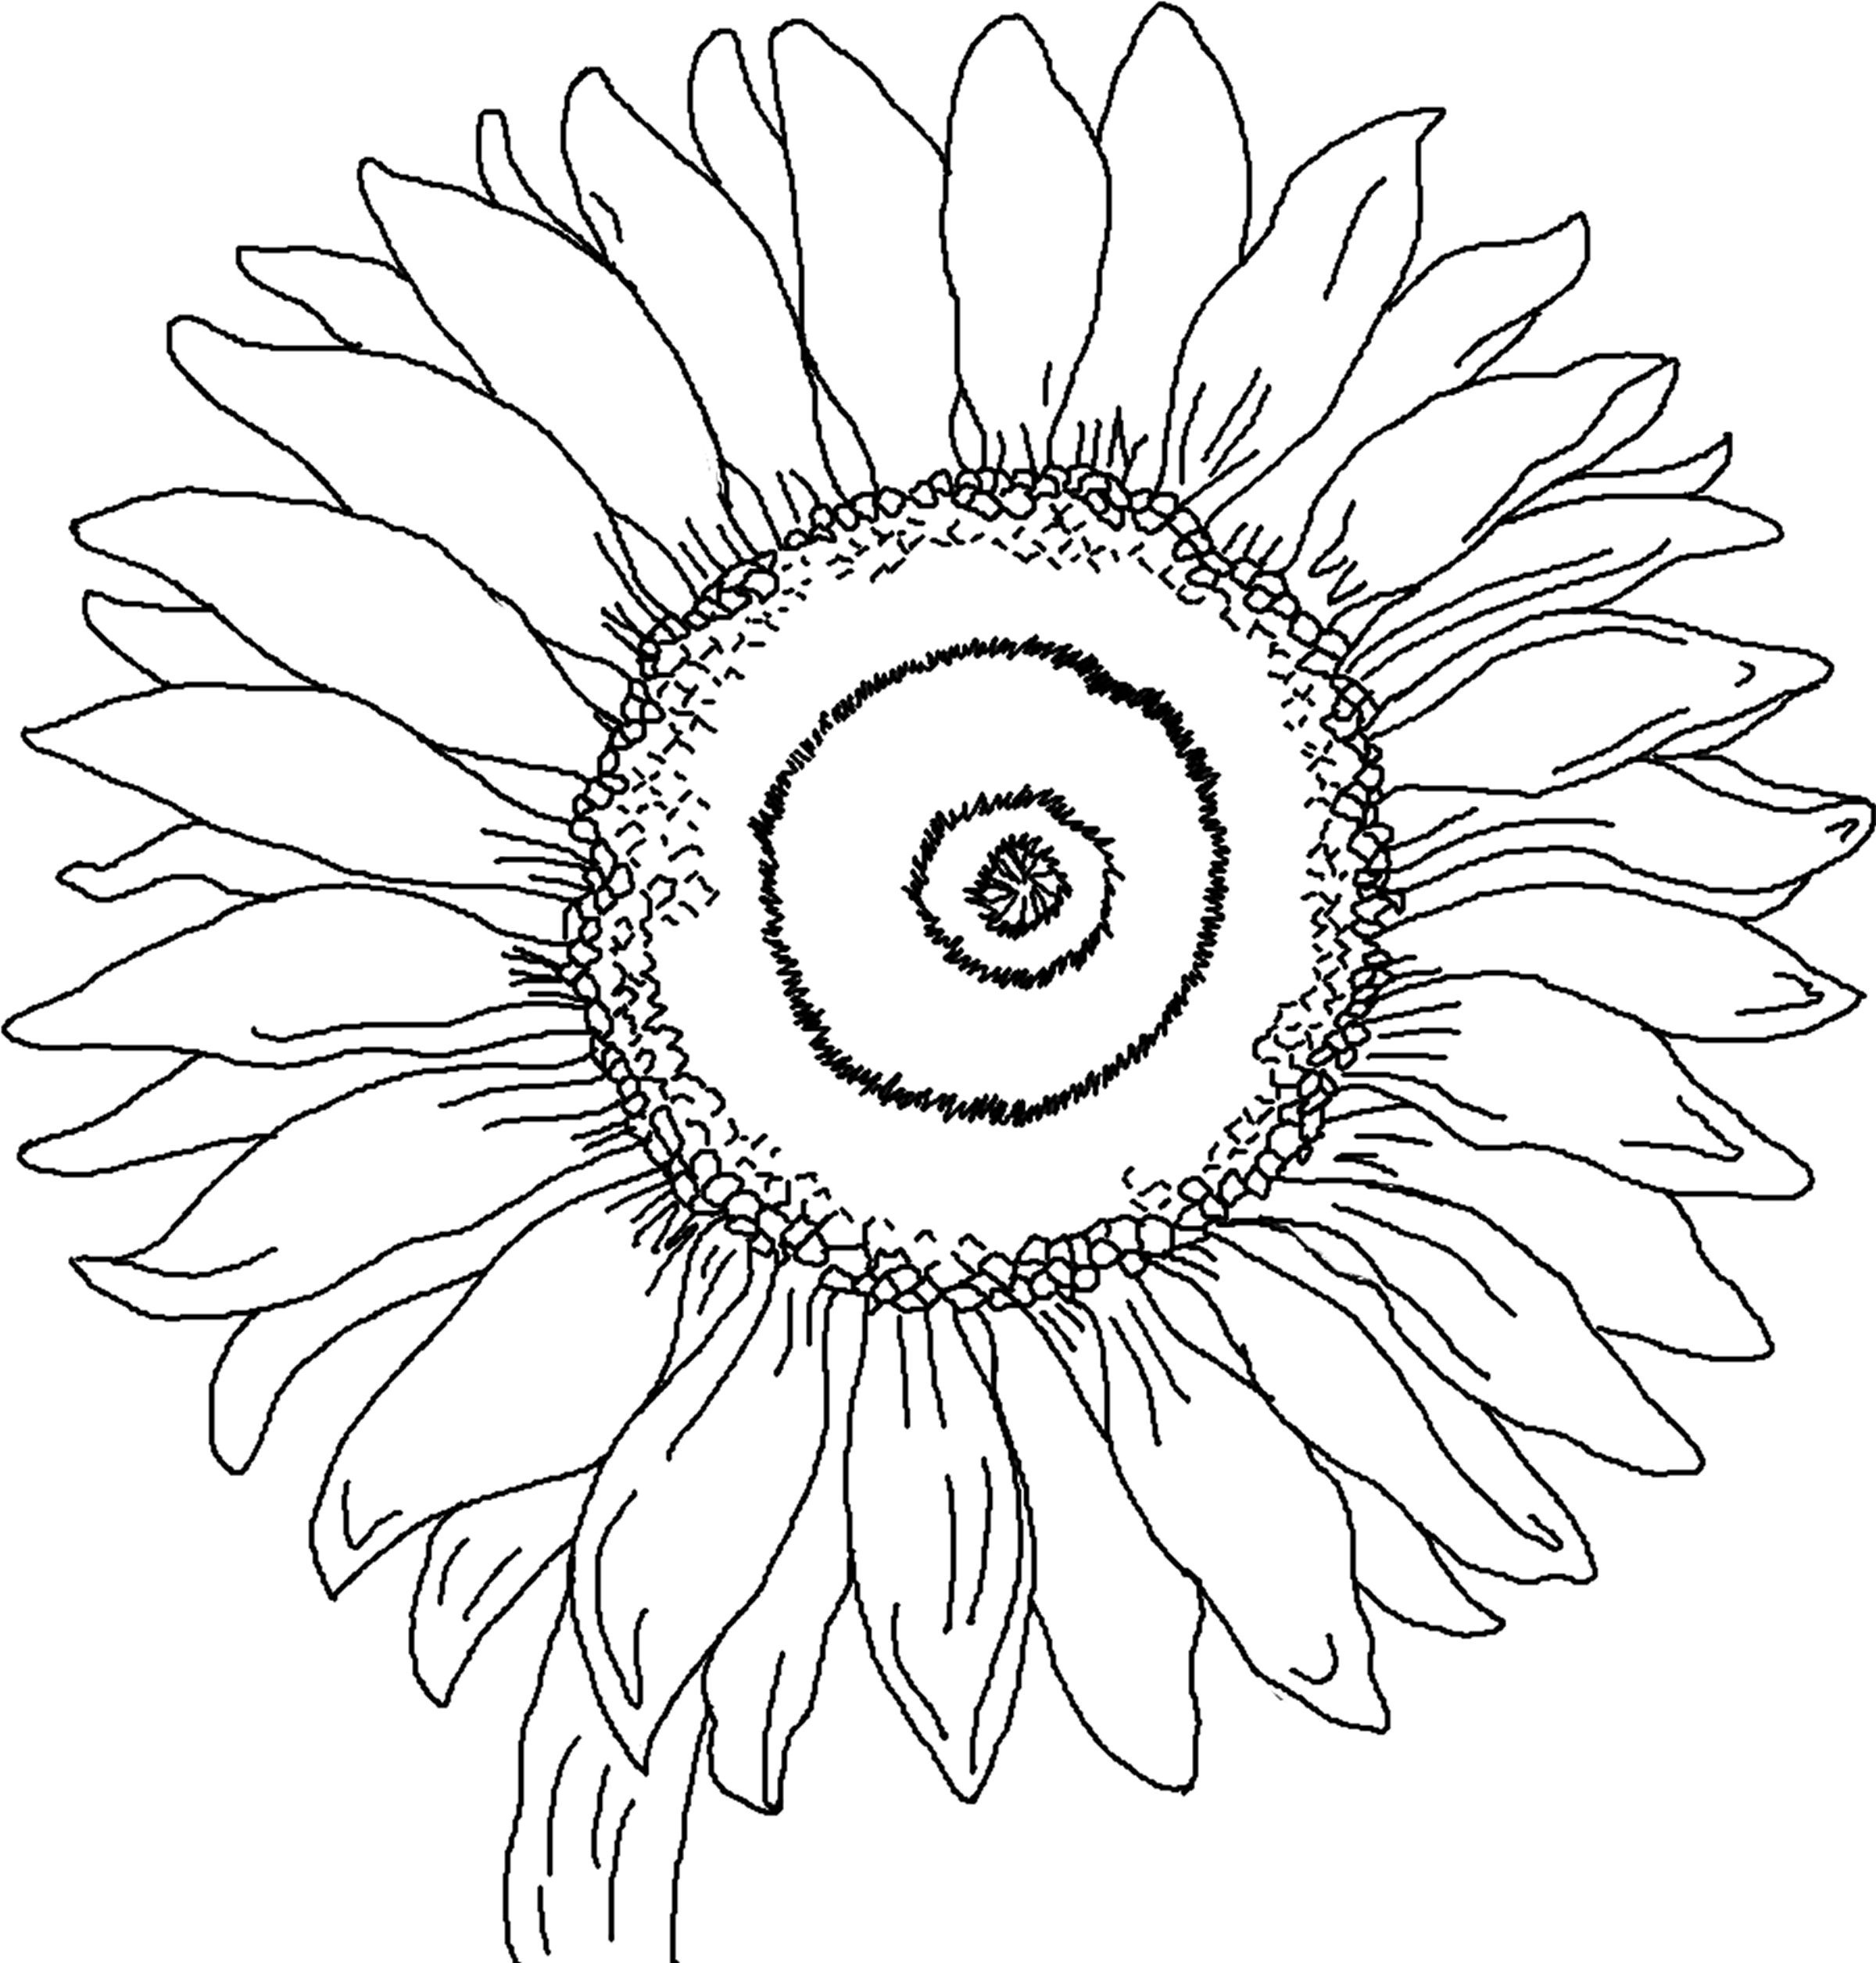 free kid coloring book pages - photo#31